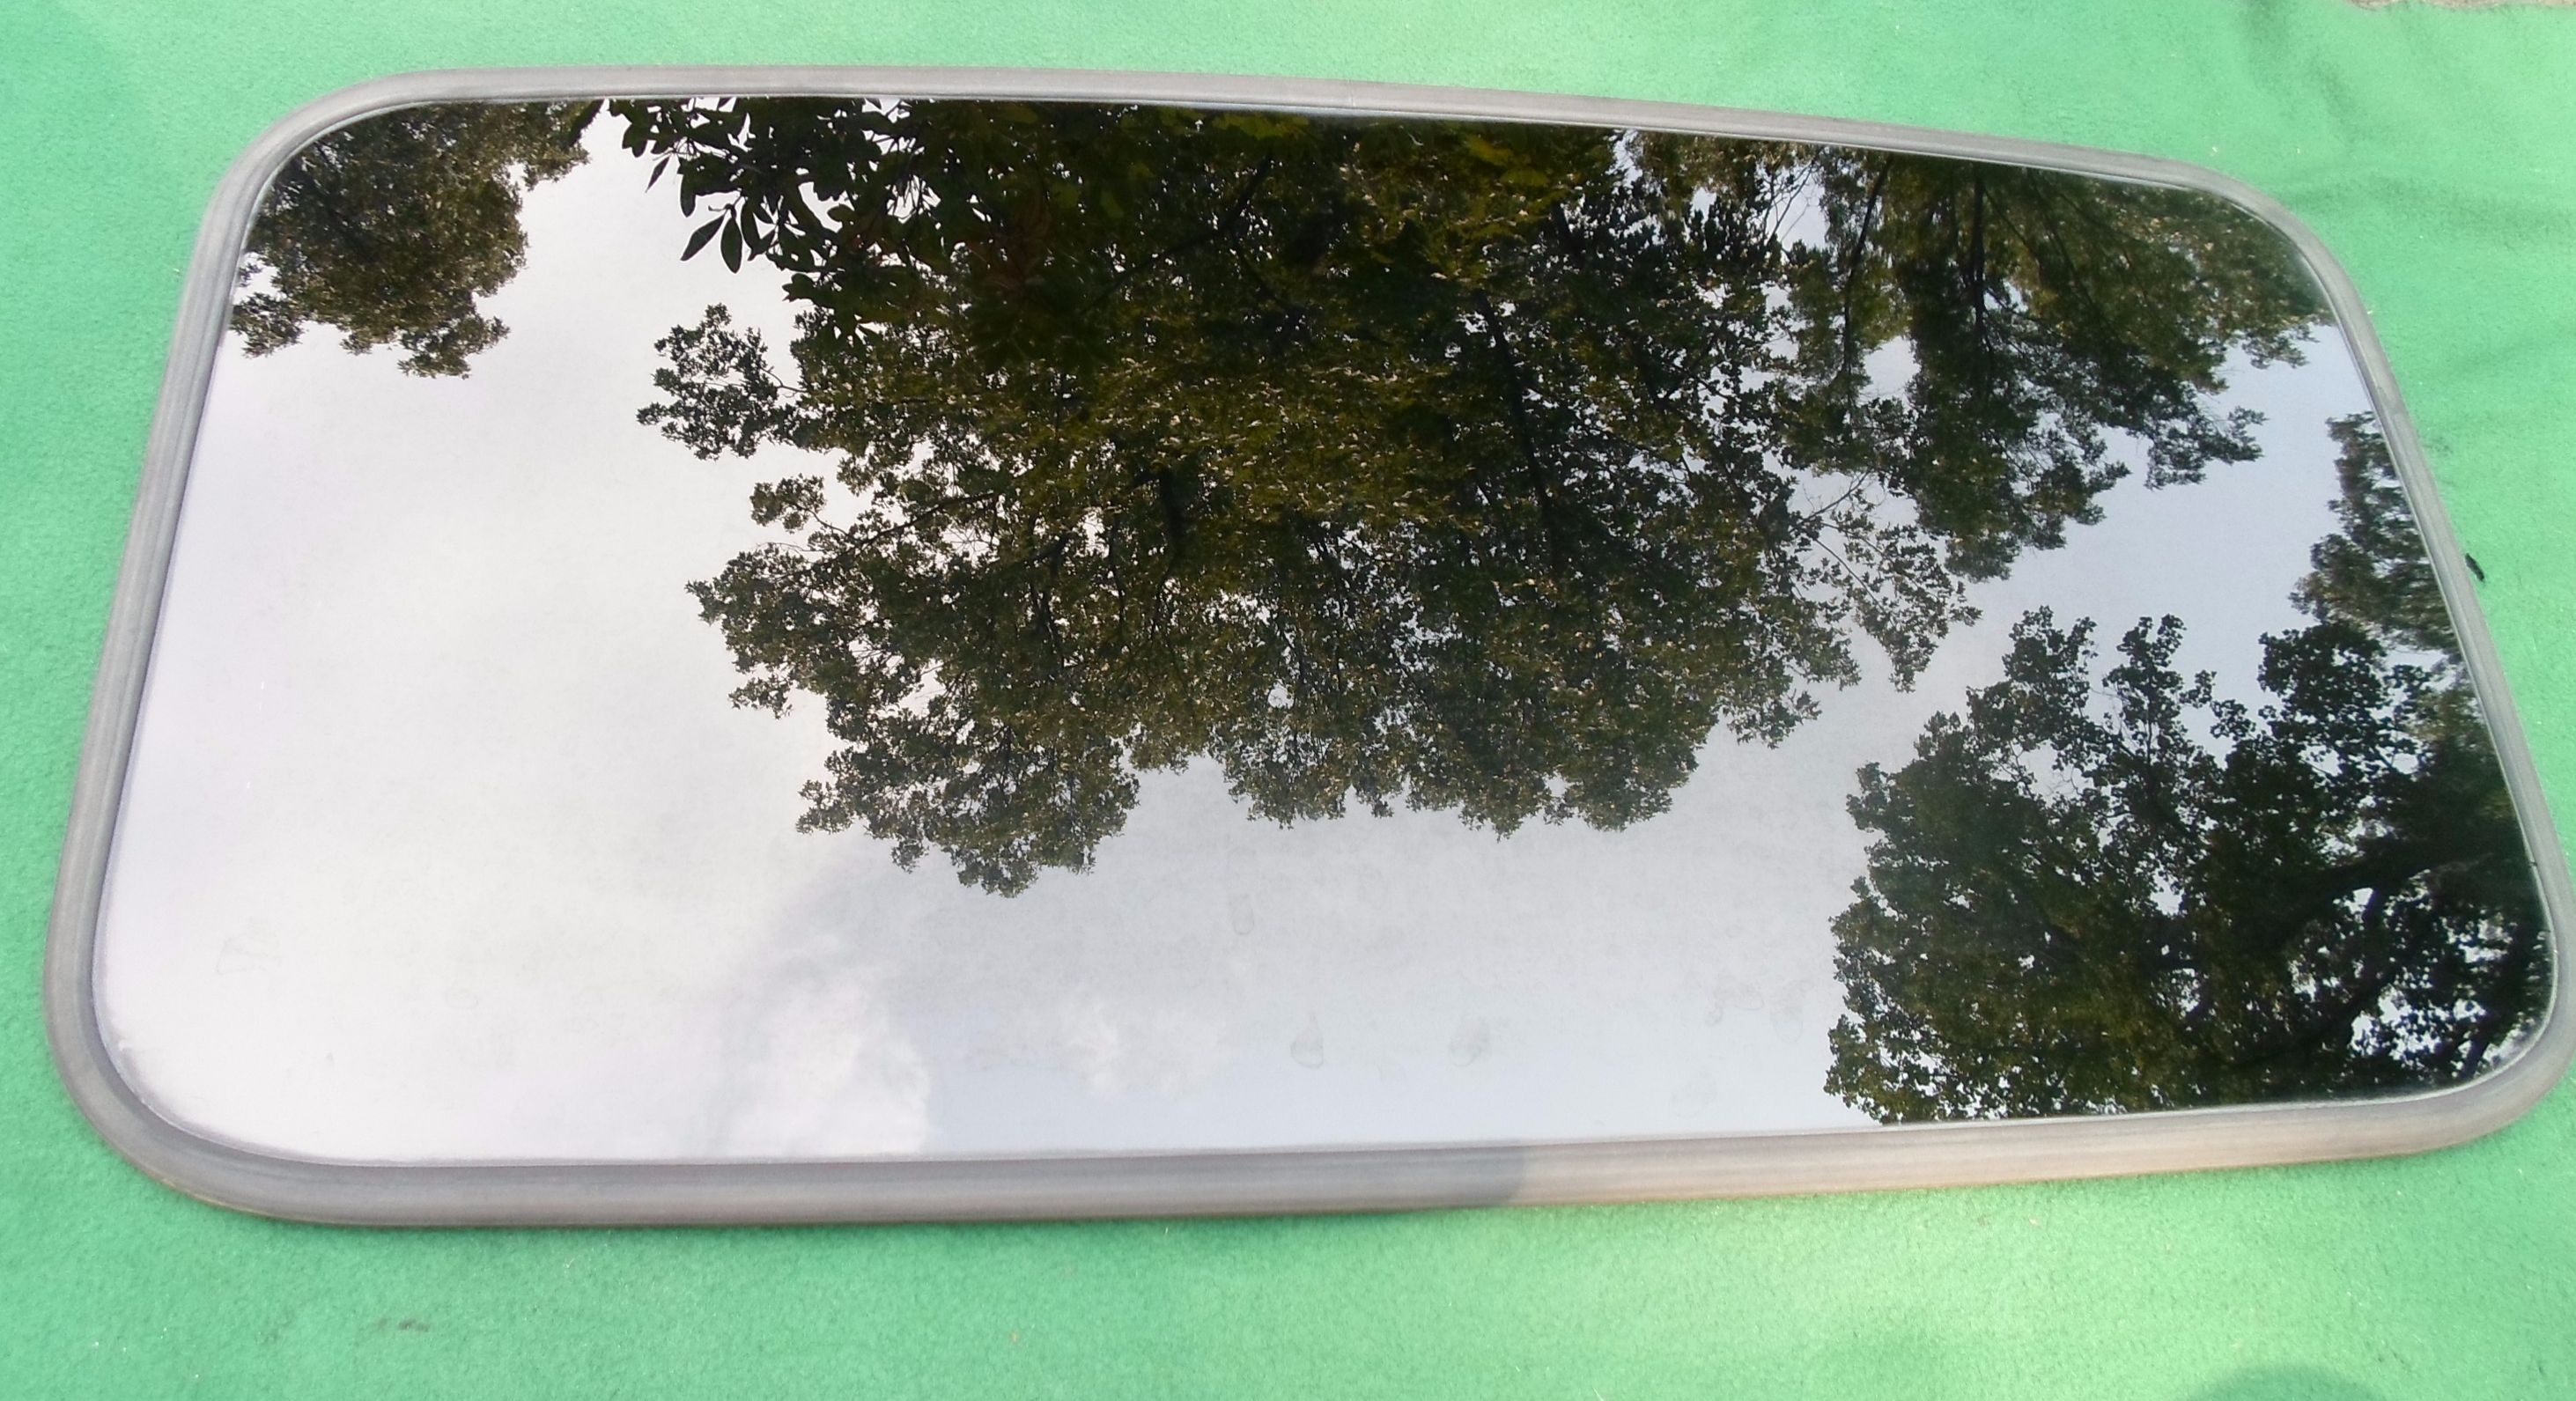 Subaru Sunroof Glass